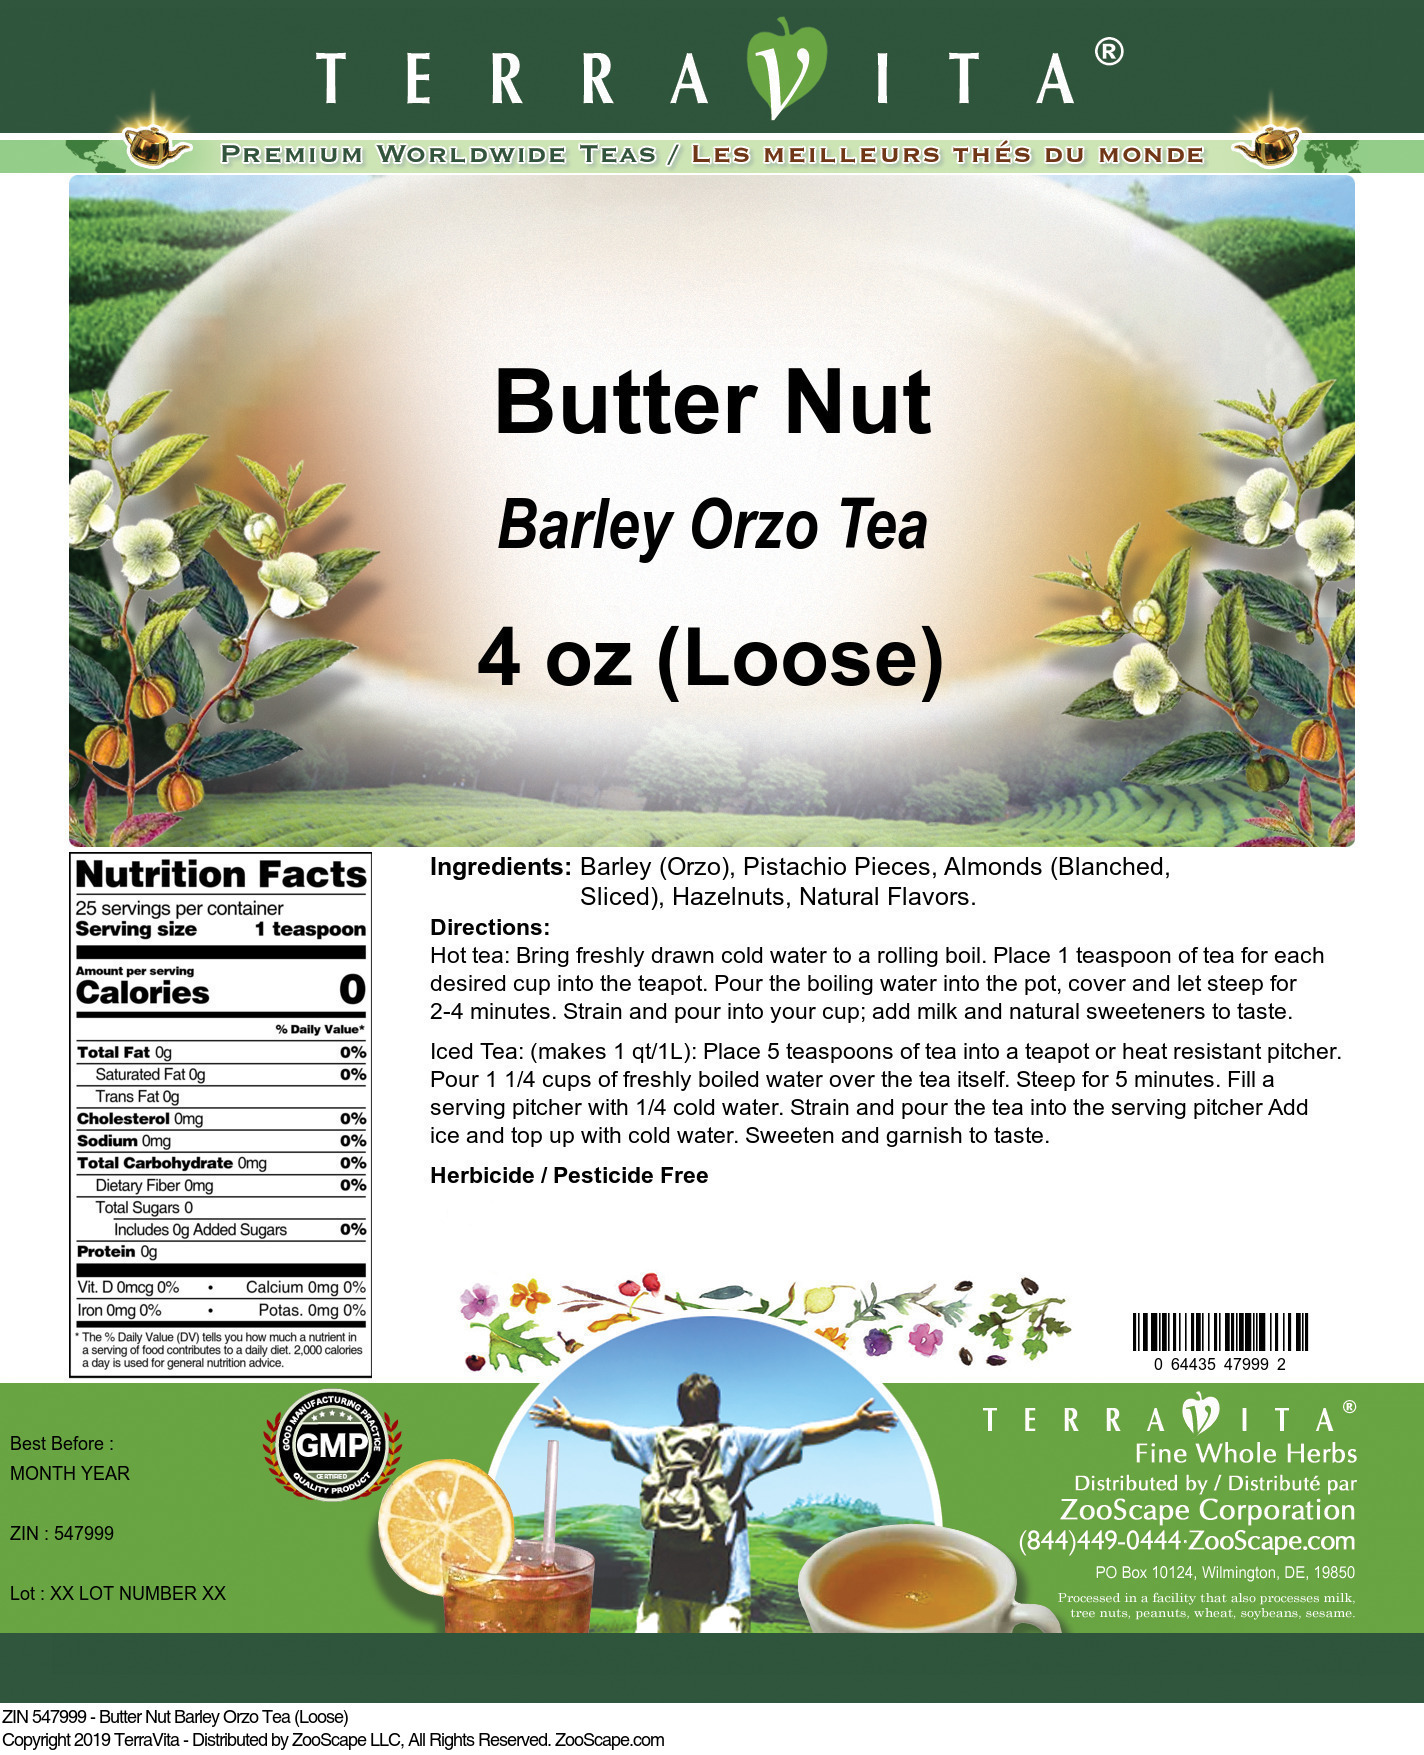 Butter Nut Barley Orzo